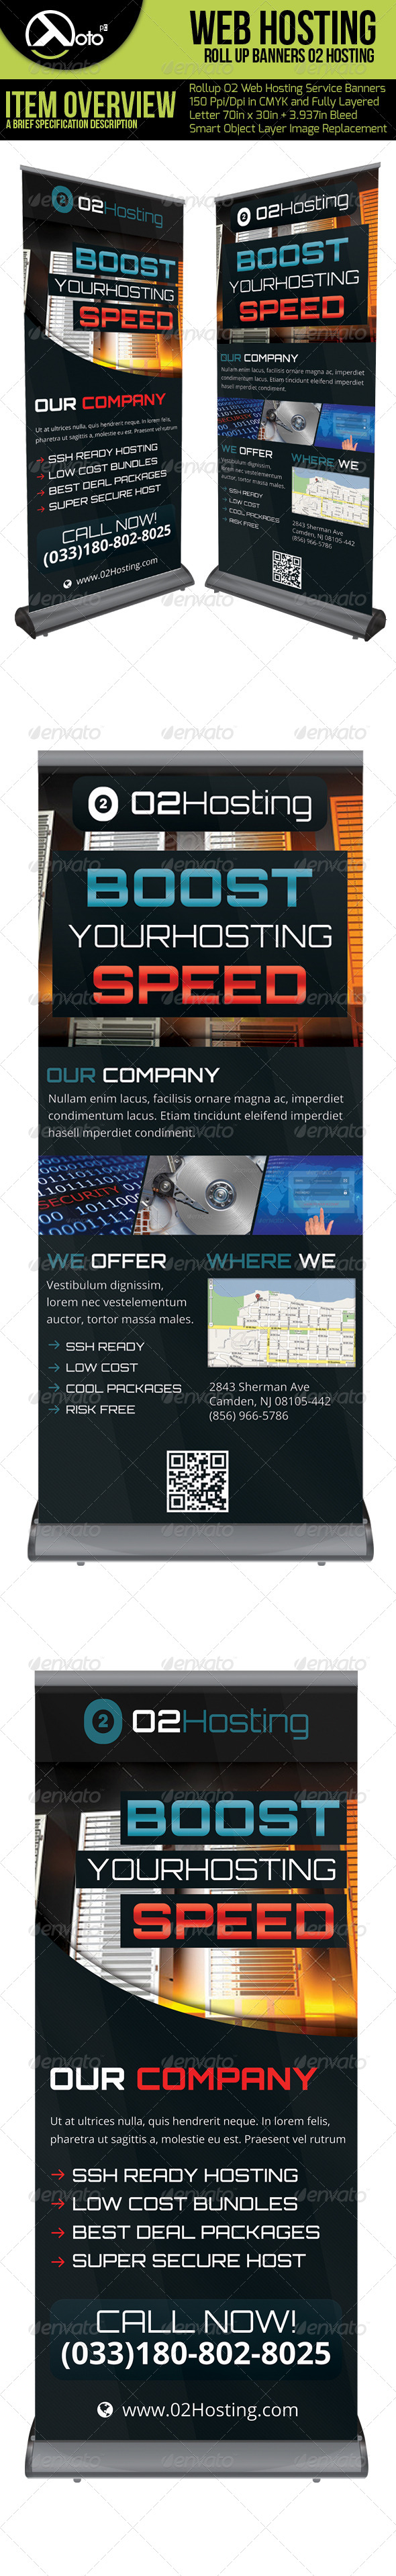 GraphicRiver O2 Web Hosting Roll Up Banners 6365716